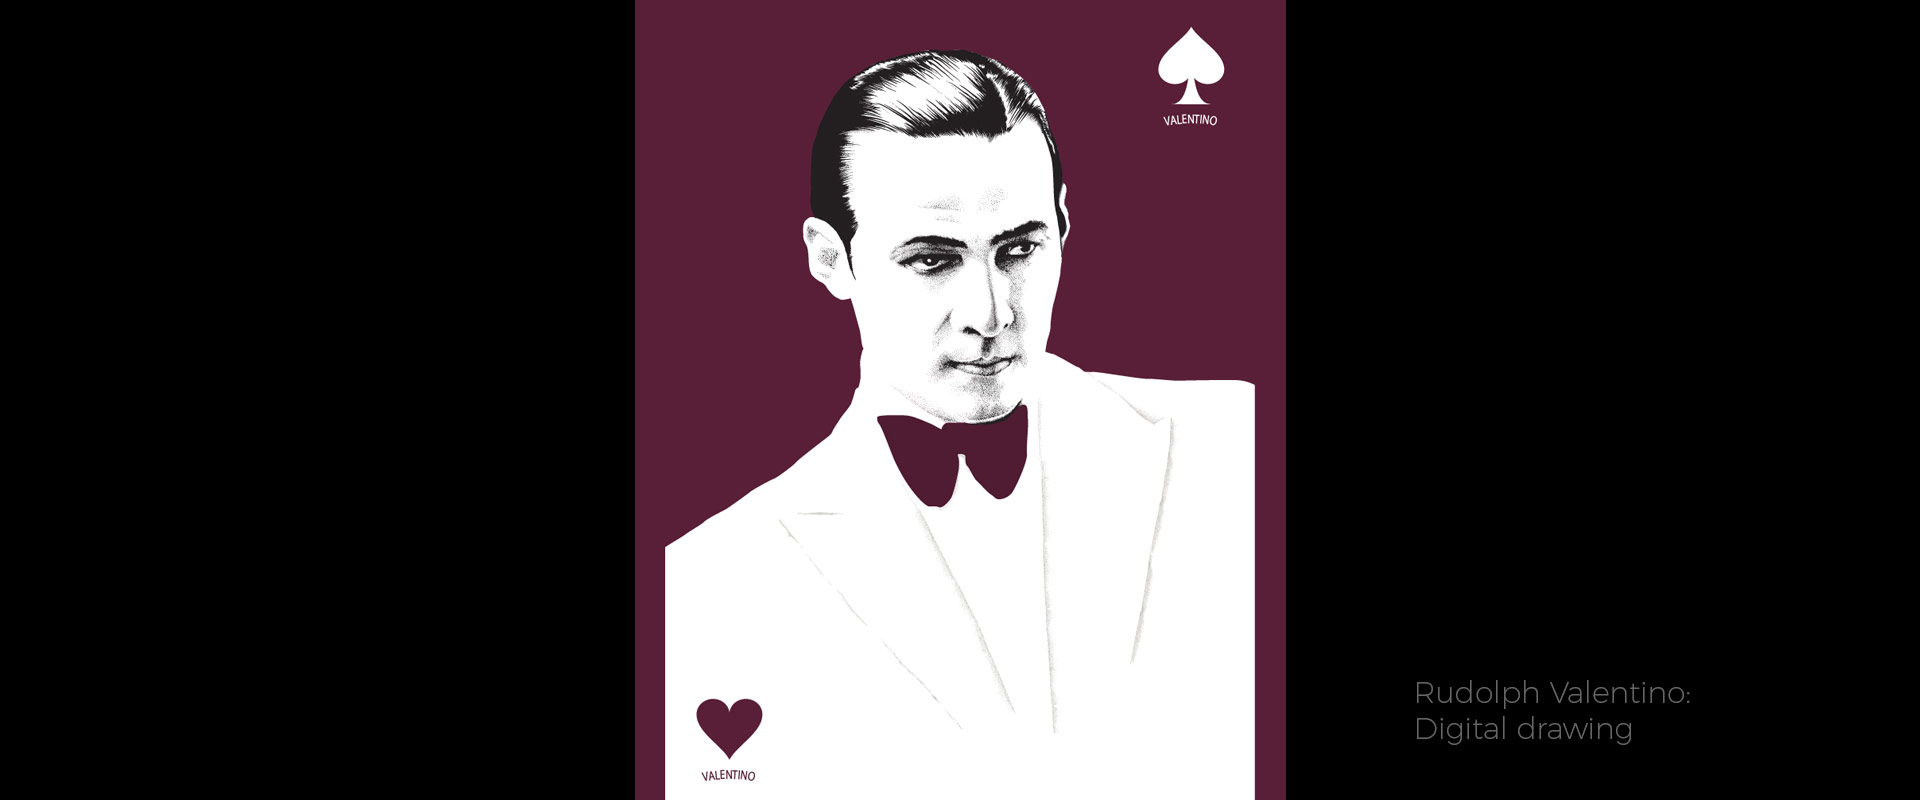 Rudolph Valentino, illustration by David Hamley